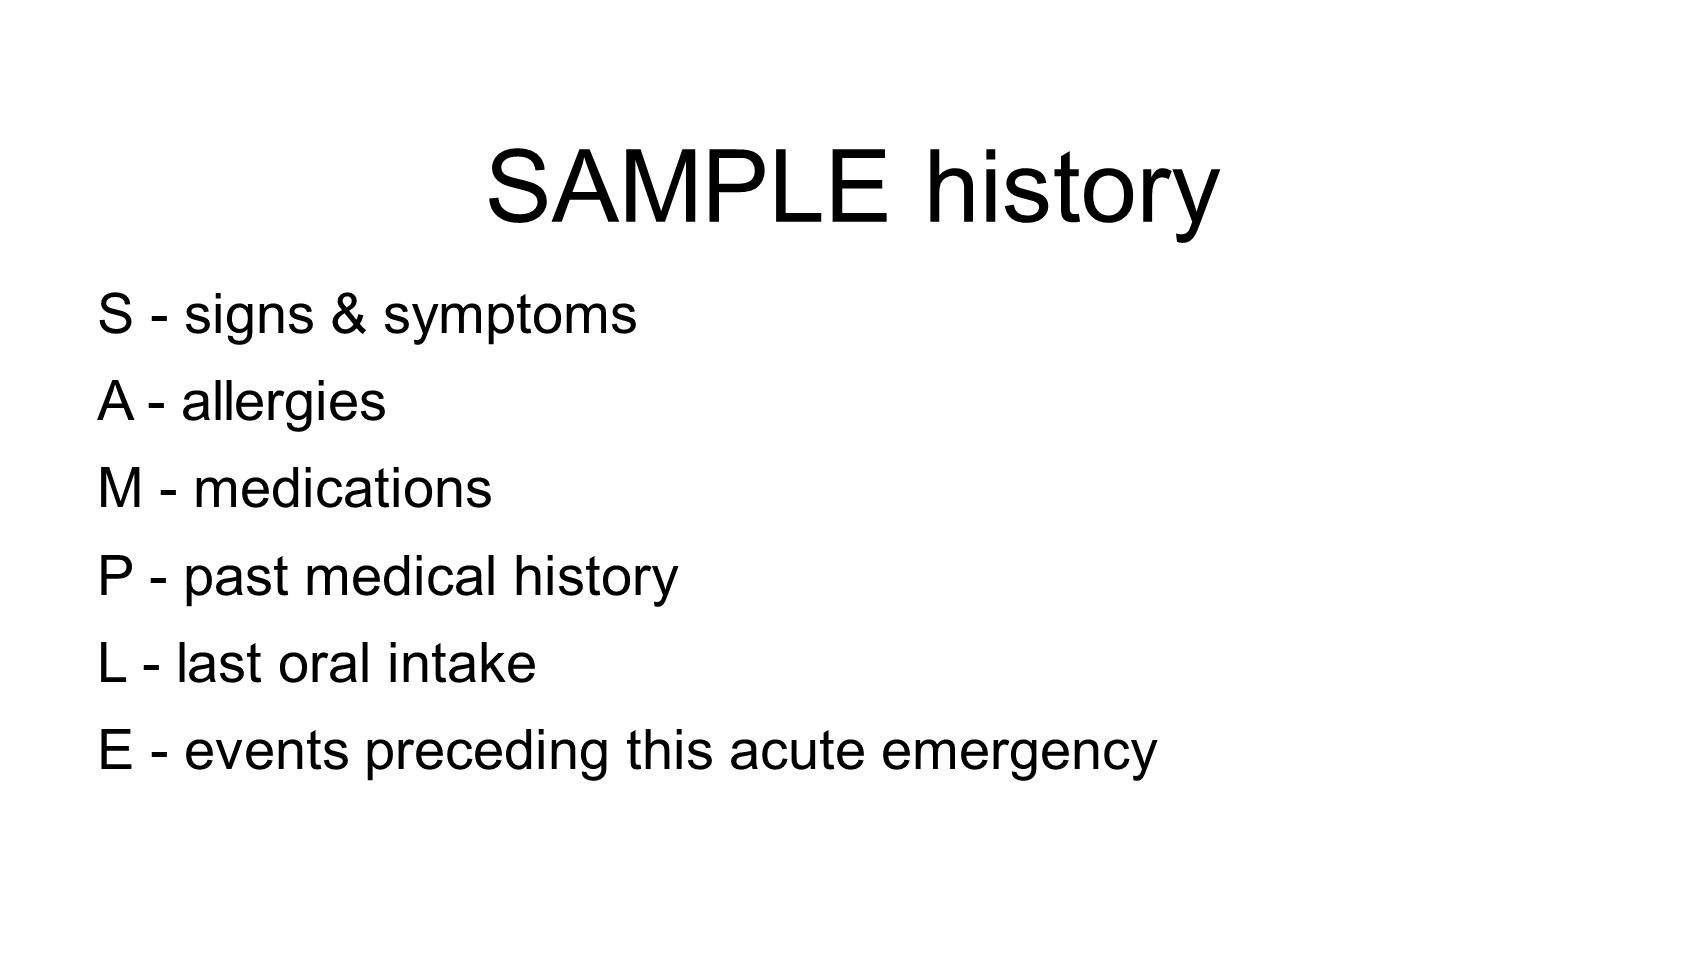 SAMPLE history S - signs & symptoms A - allergies M - medications P - past medical history L - last oral intake E - events preceding this acute emergency